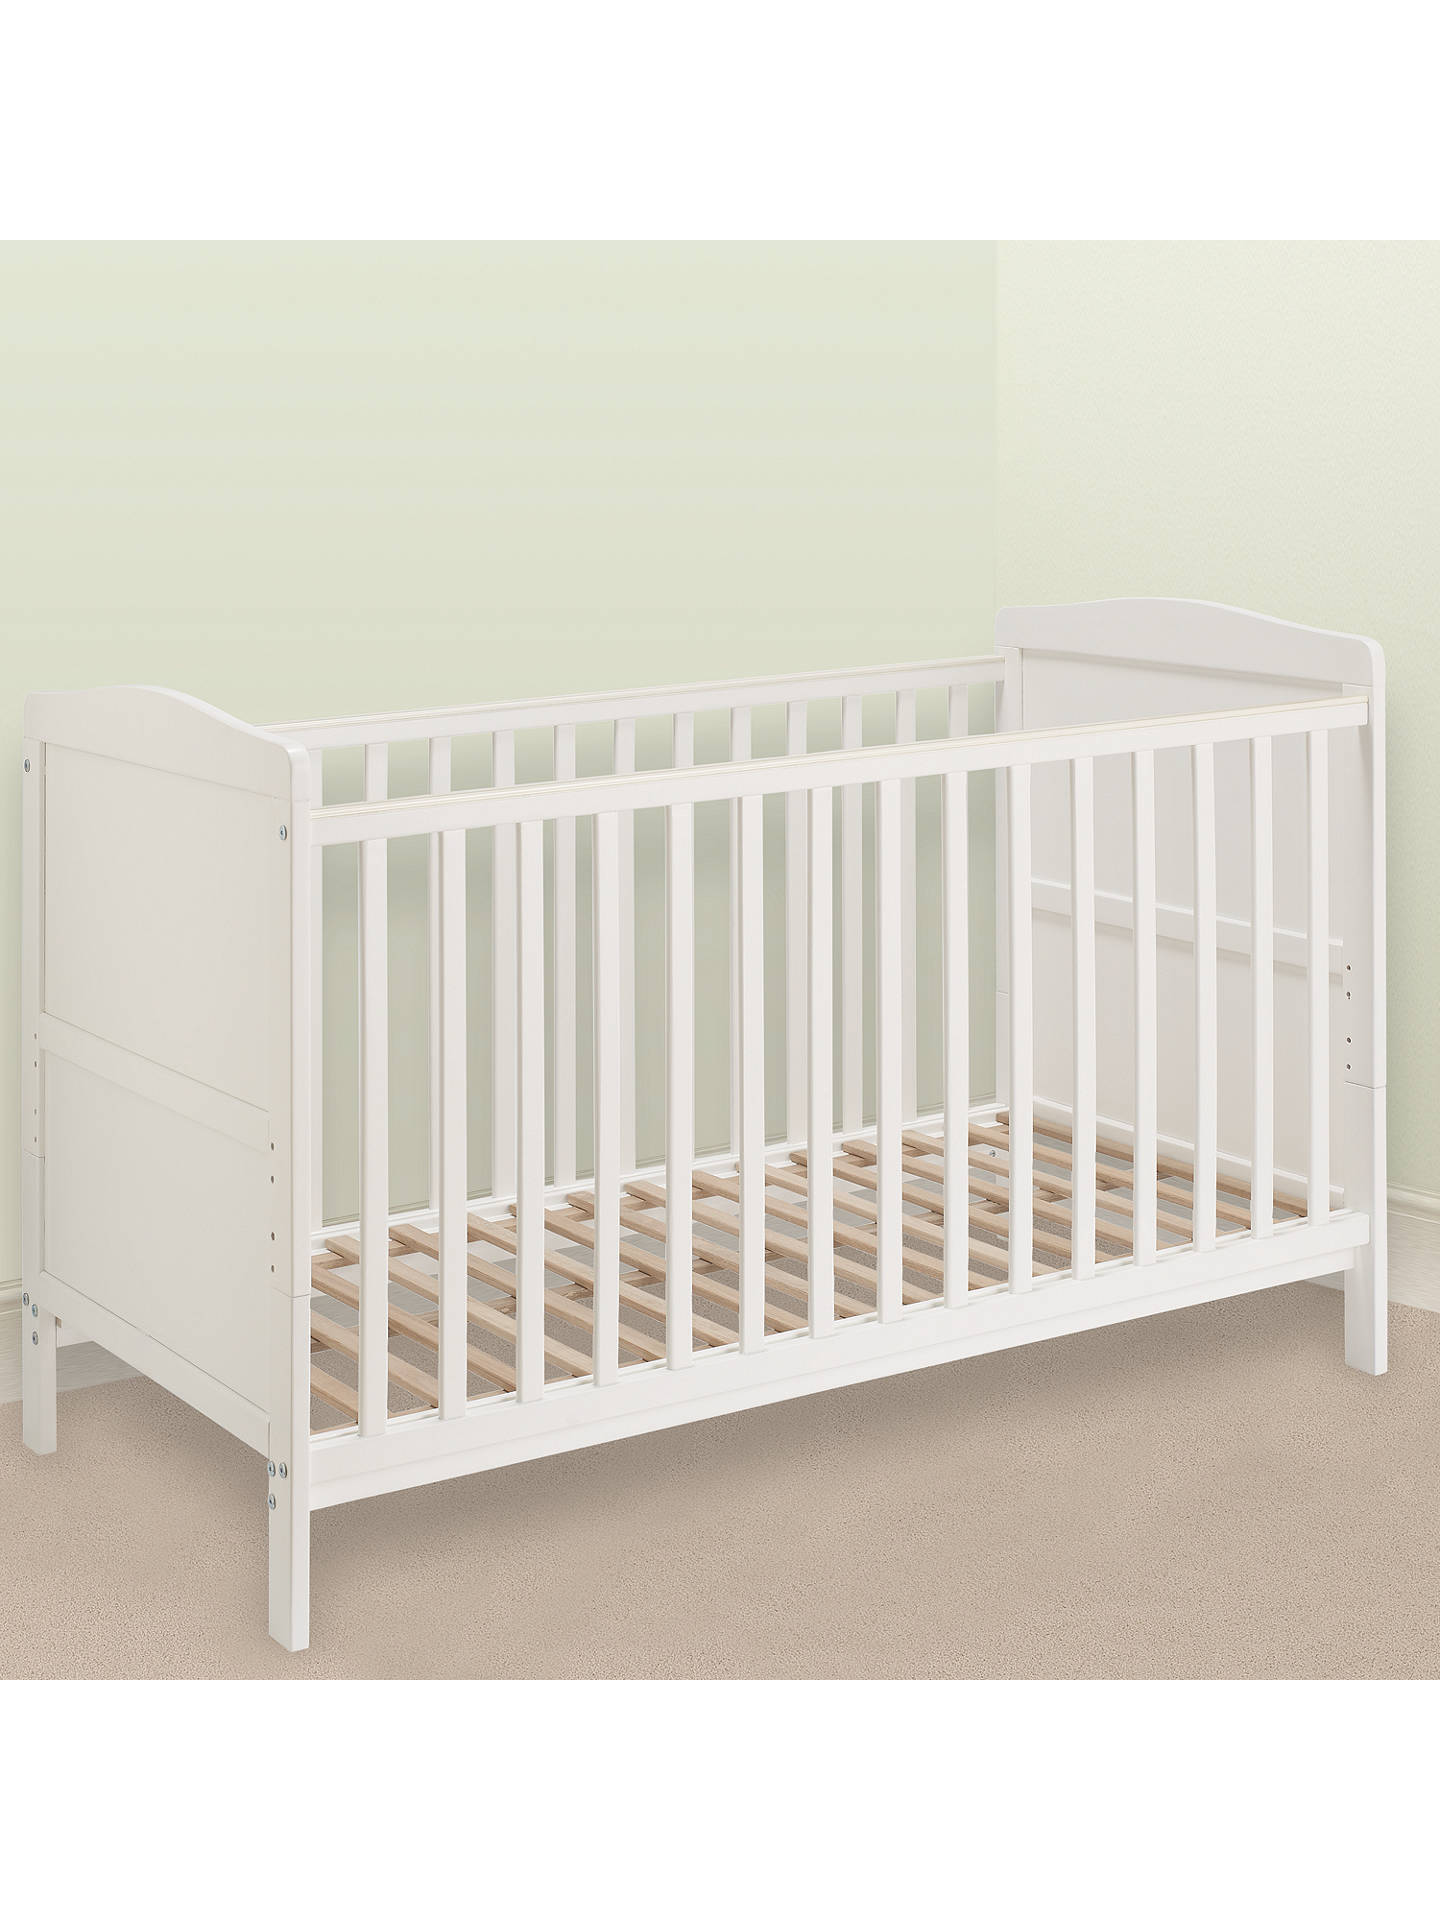 john lewis toddler bed instructions